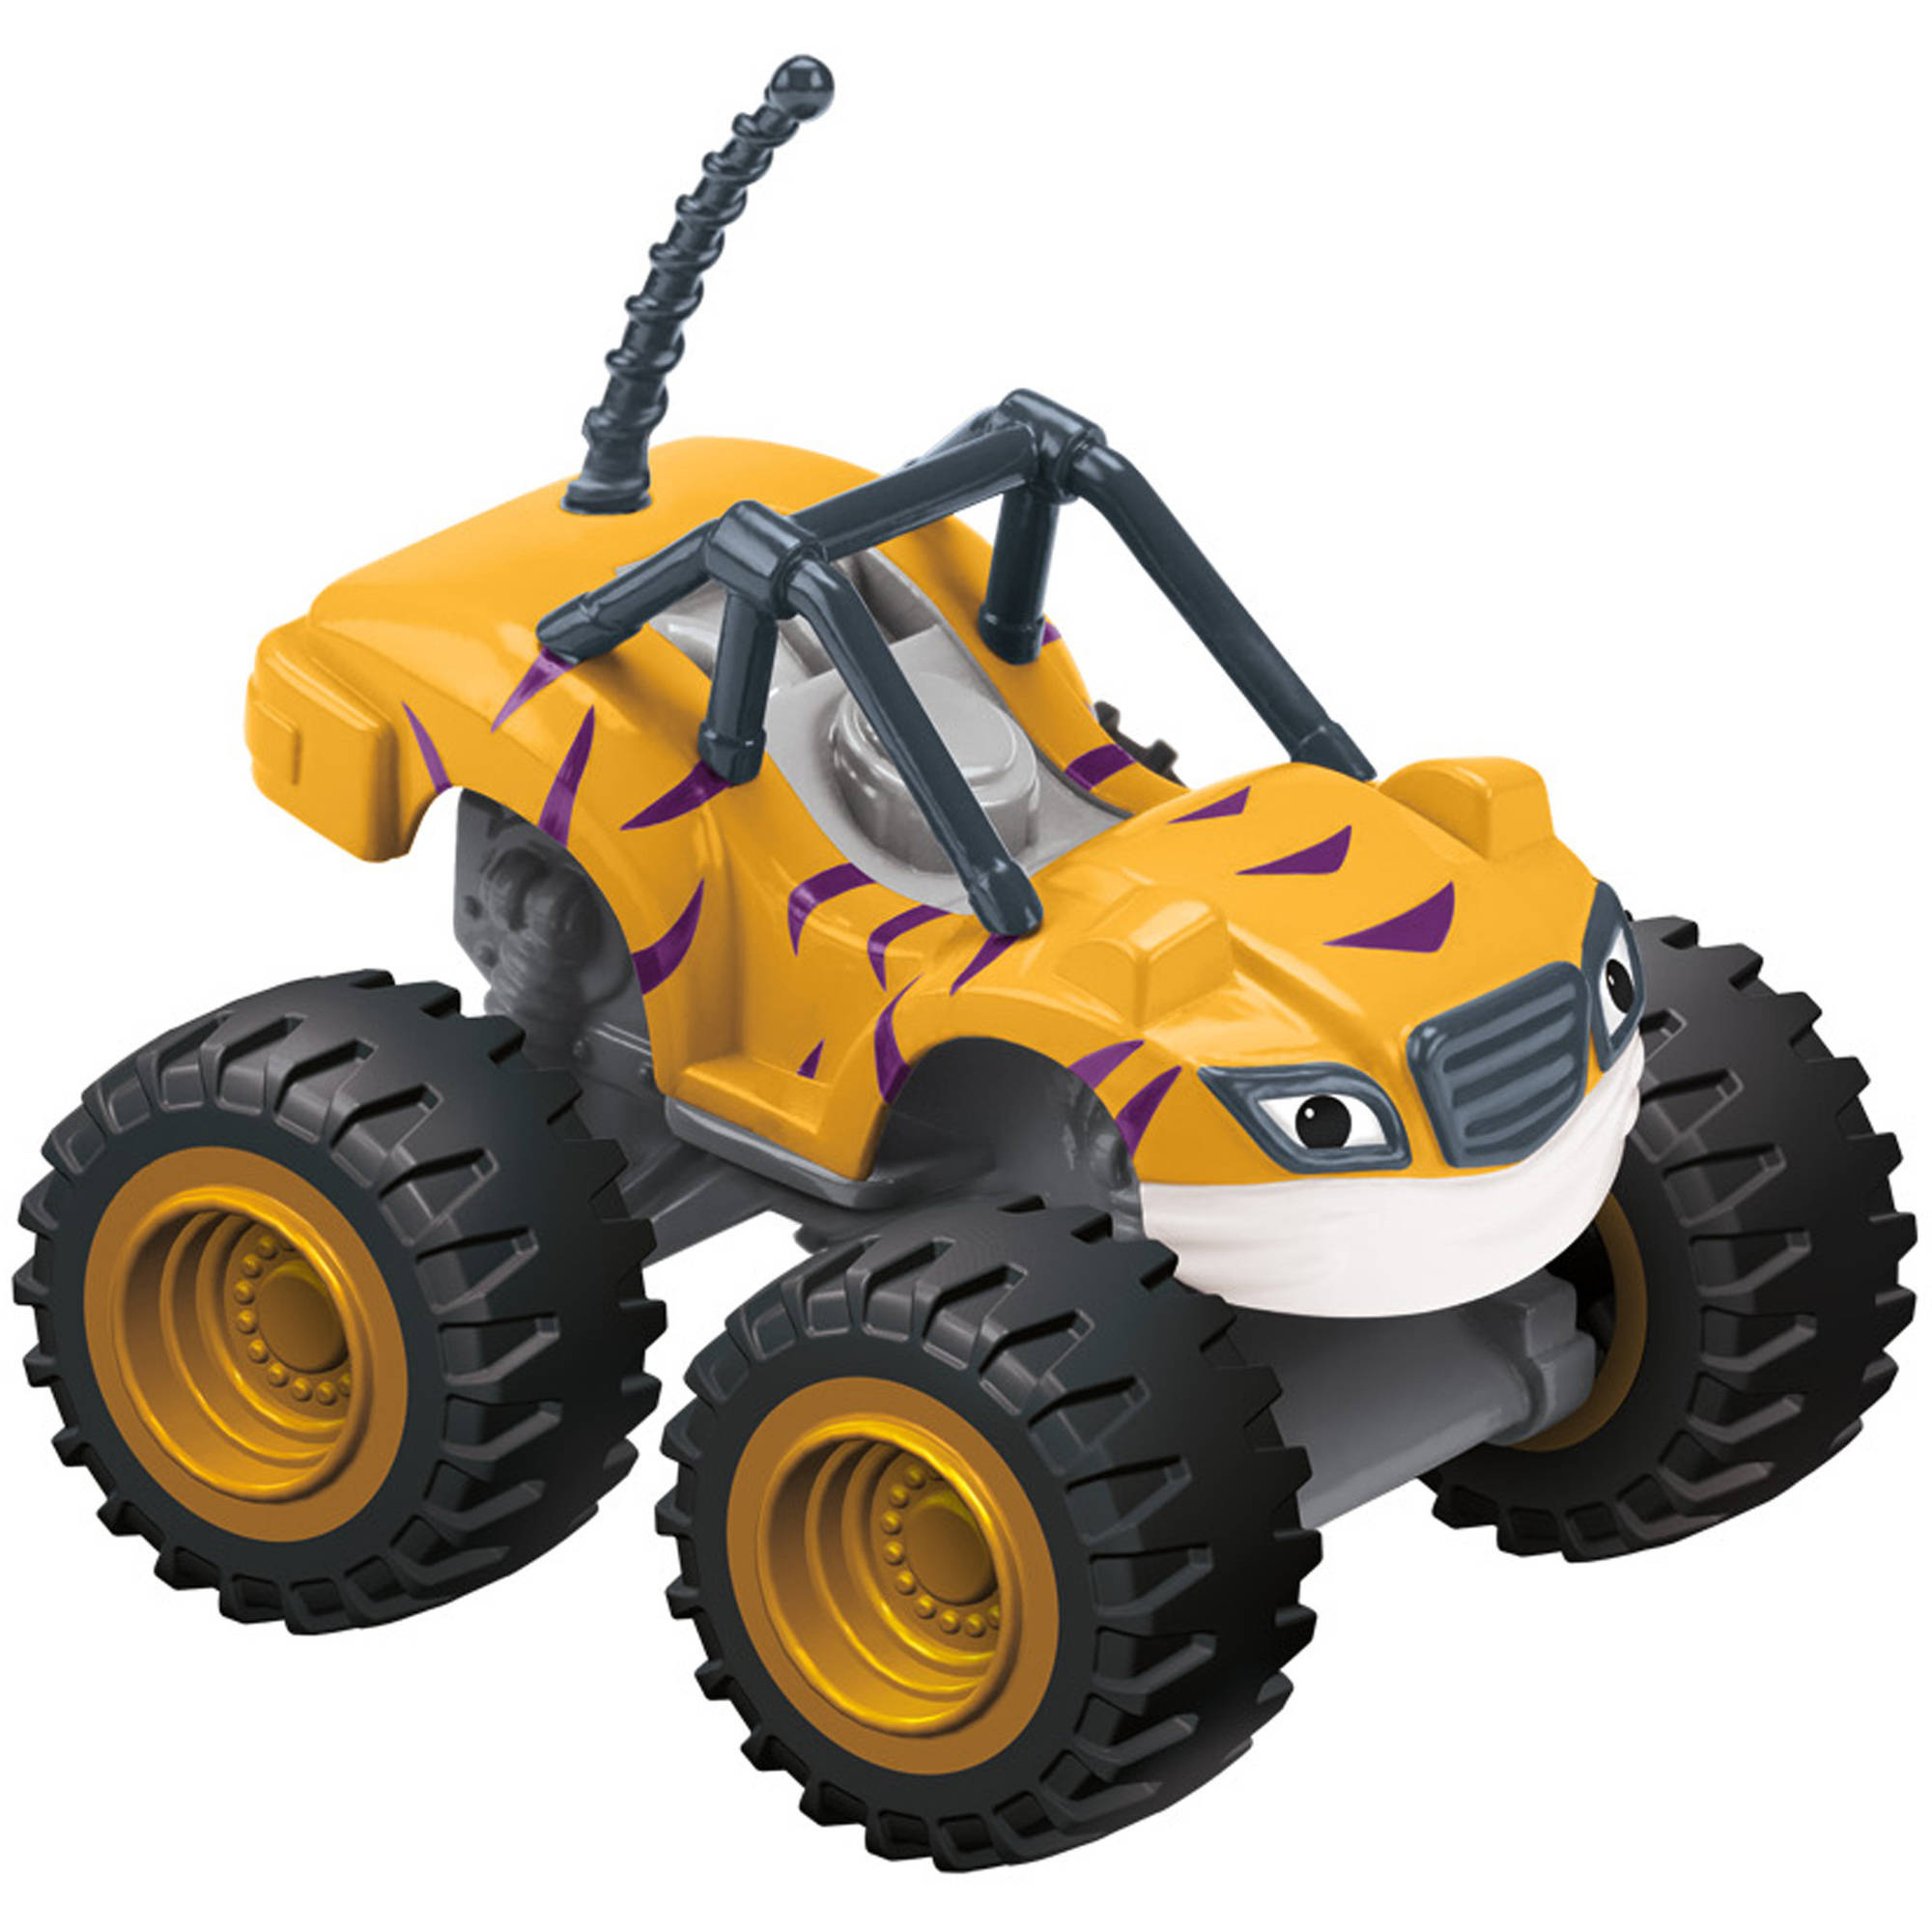 Nickelodeon Blaze and the Monster Machines Blaze Stripes Basic Vehicle by FISHER PRICE